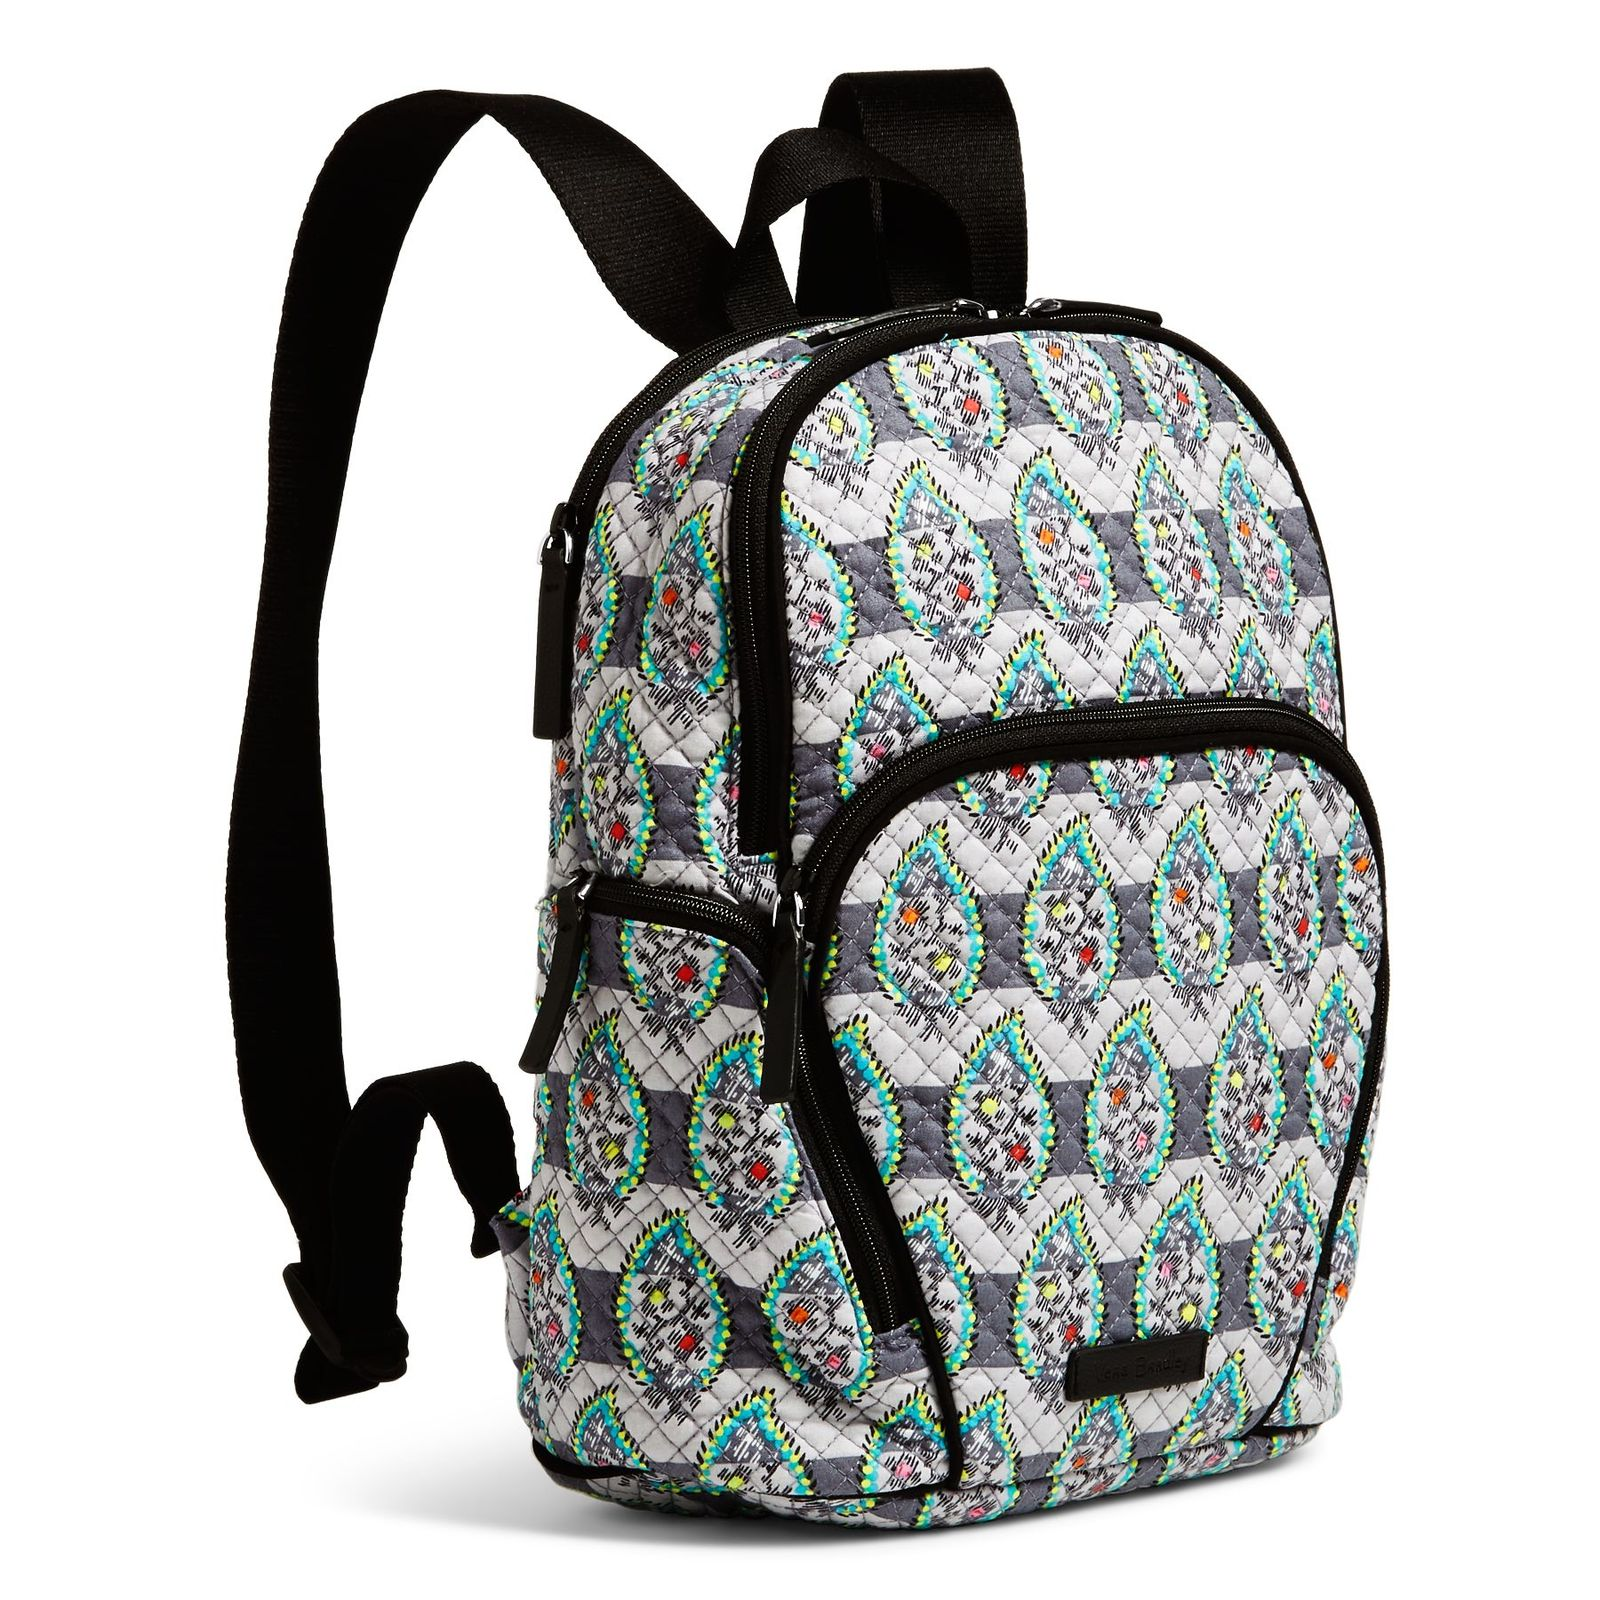 Vera Bradley Quilted Signature Cotton Hadley Backpack, Paisley Stripes